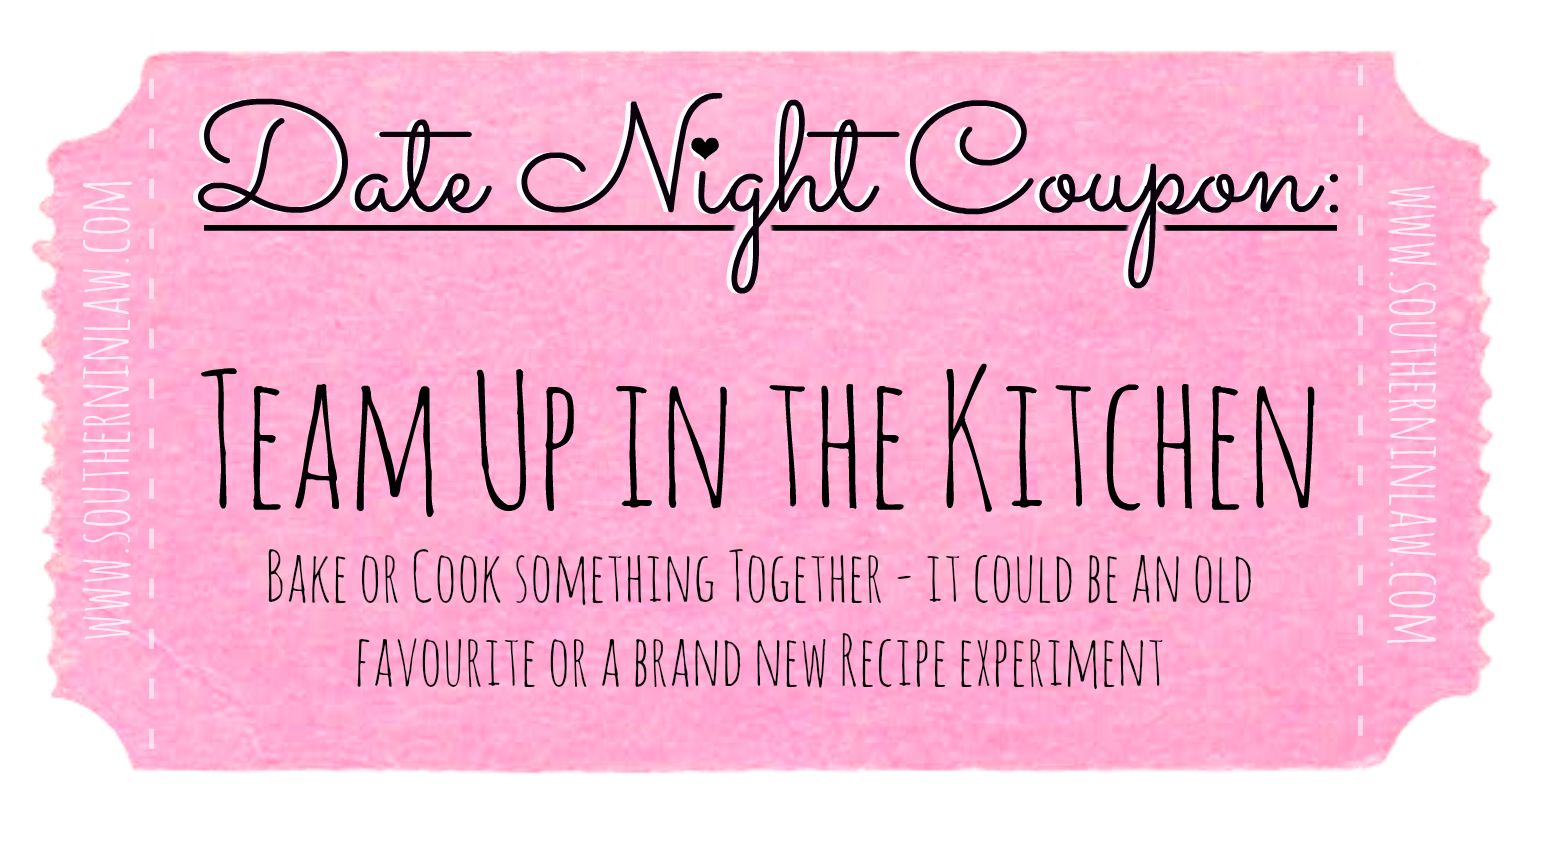 Cheap Date Ideas - Date Night Coupons - Cook or Bake Together